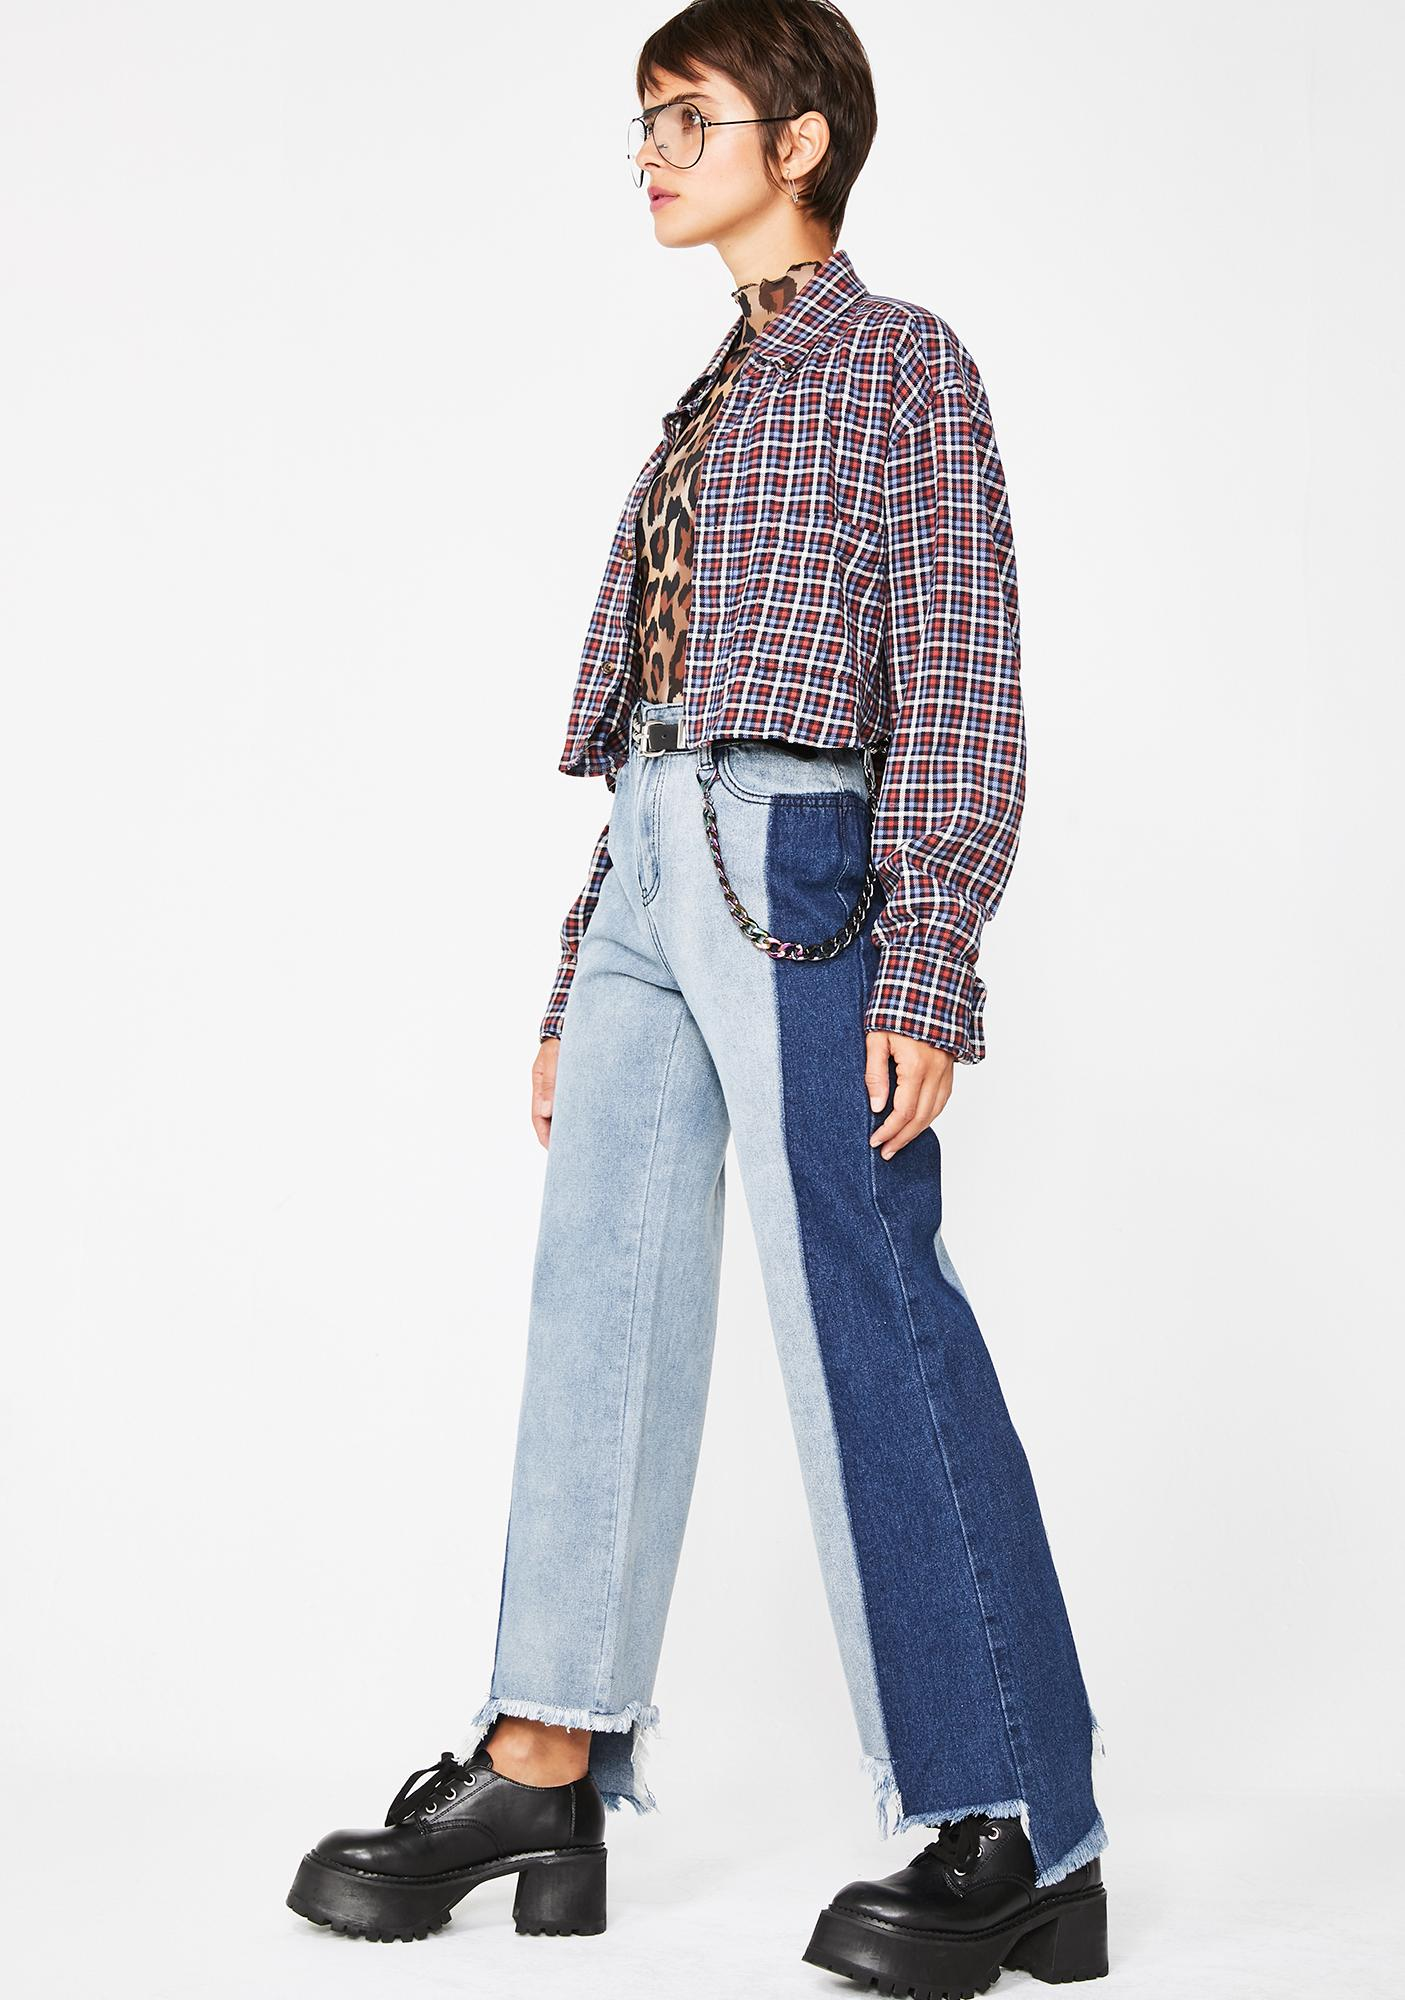 Make It Last Two Tone Jeans